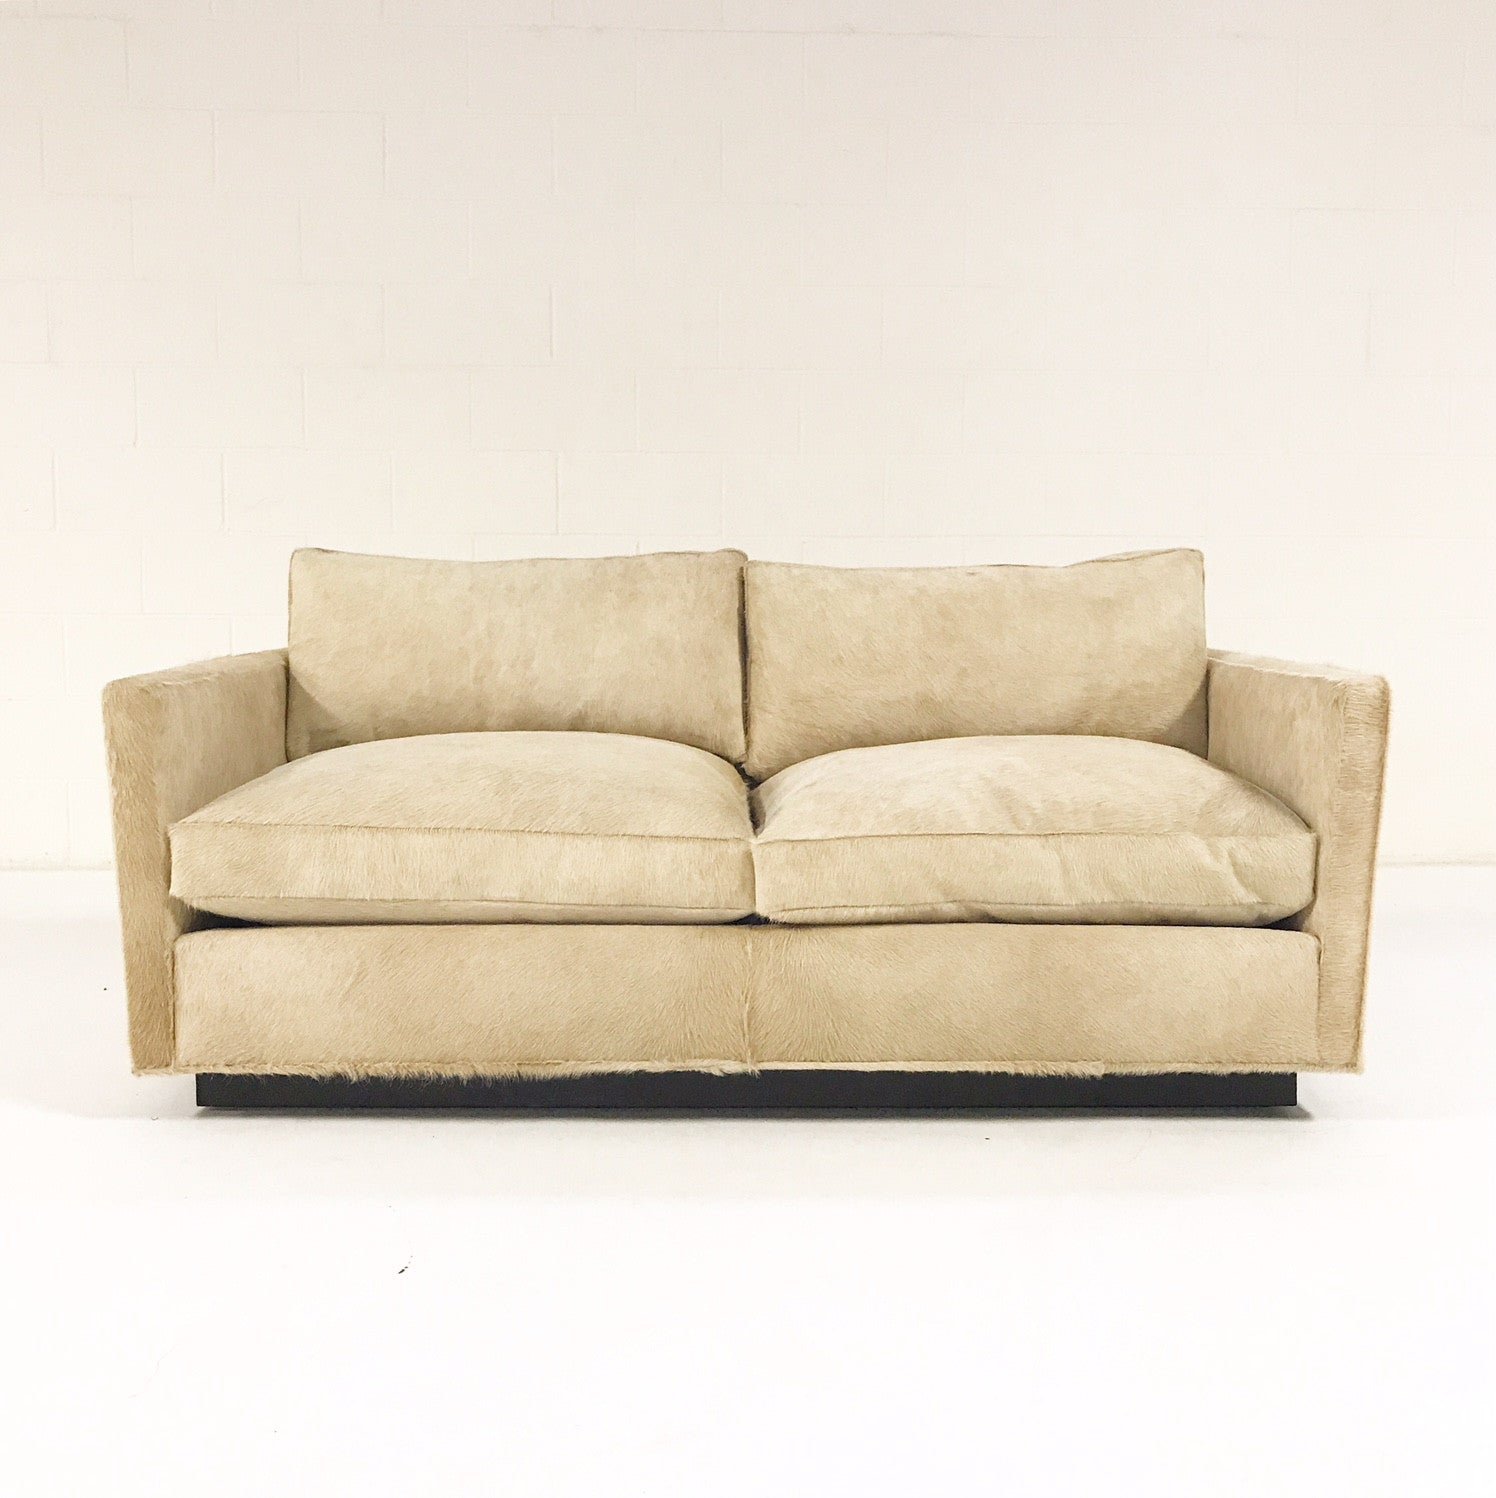 Loveseat in Brazilian Cowhide - FORSYTH